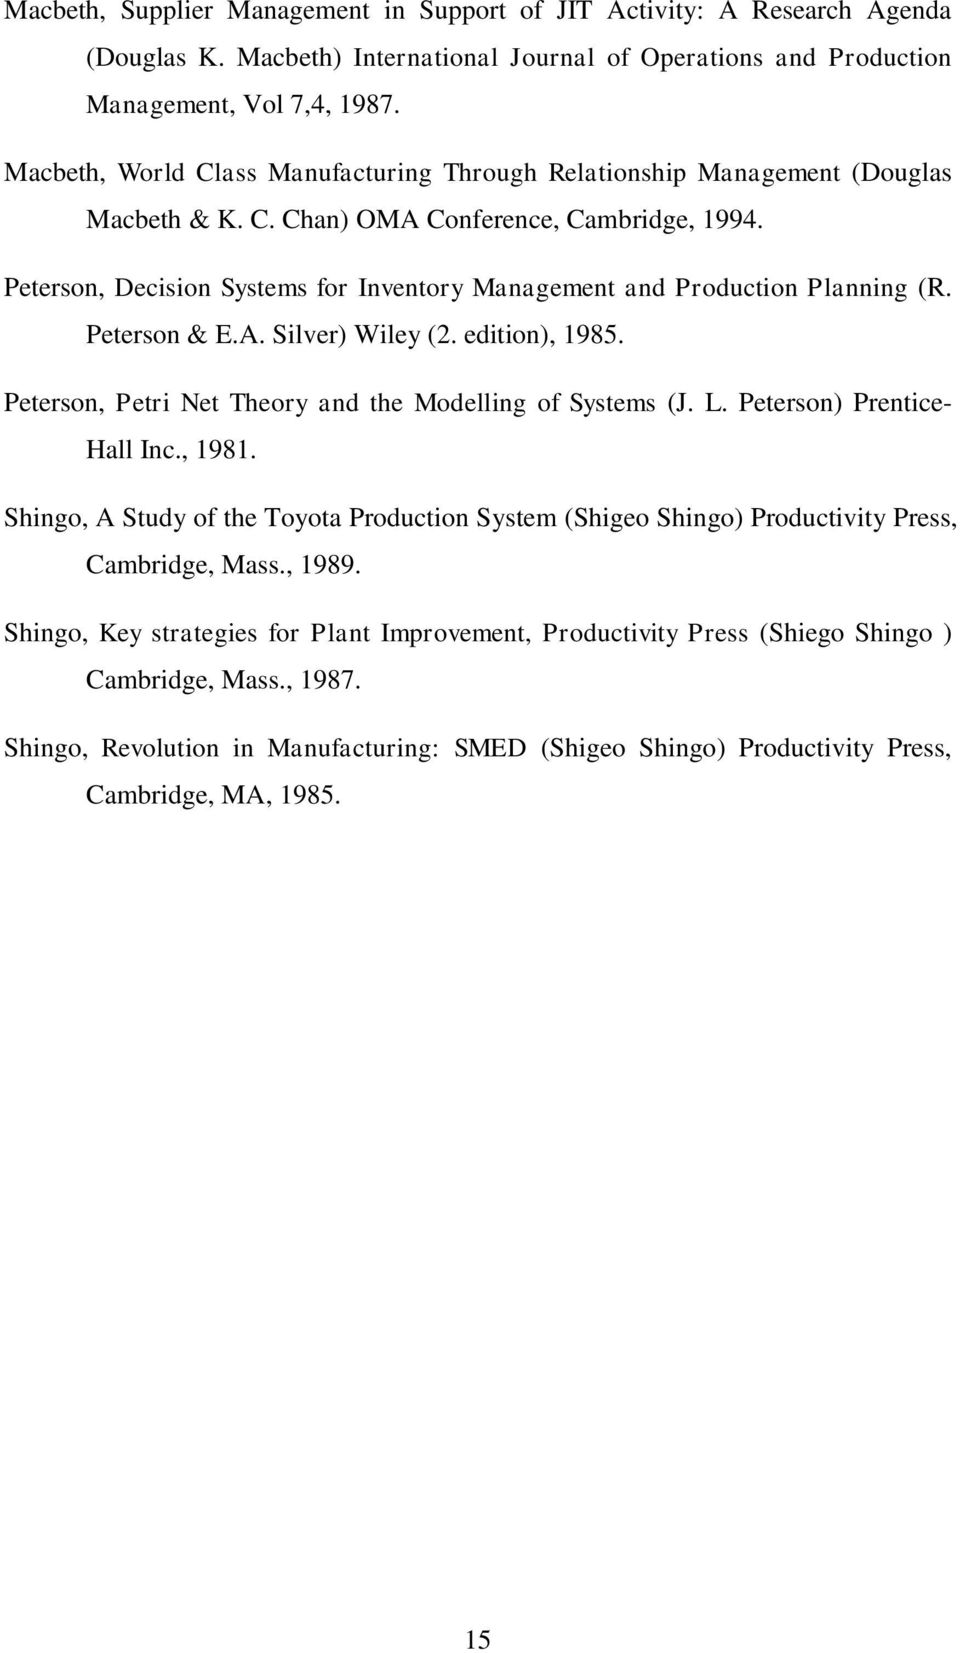 Peterson, Decision Systems for Inventory Management and Production Planning (R. Peterson & E.A. Silver) Wiley (2. edition), 1985. Peterson, Petri Net Theory and the Modelling of Systems (J. L.